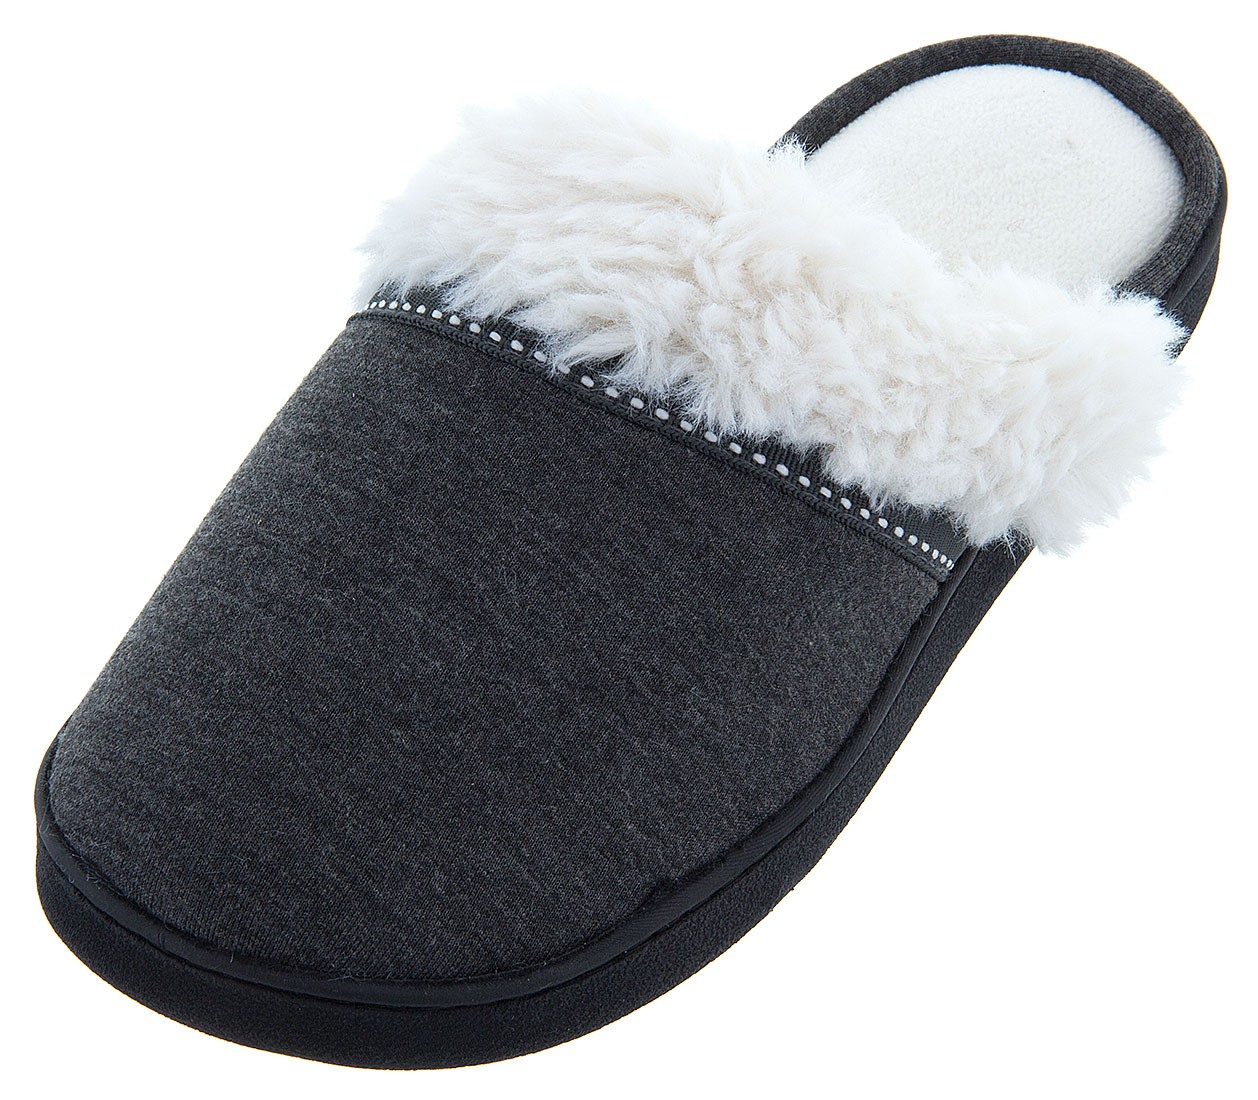 Isotoner Women's Charcoal Jersey Knit Slippers